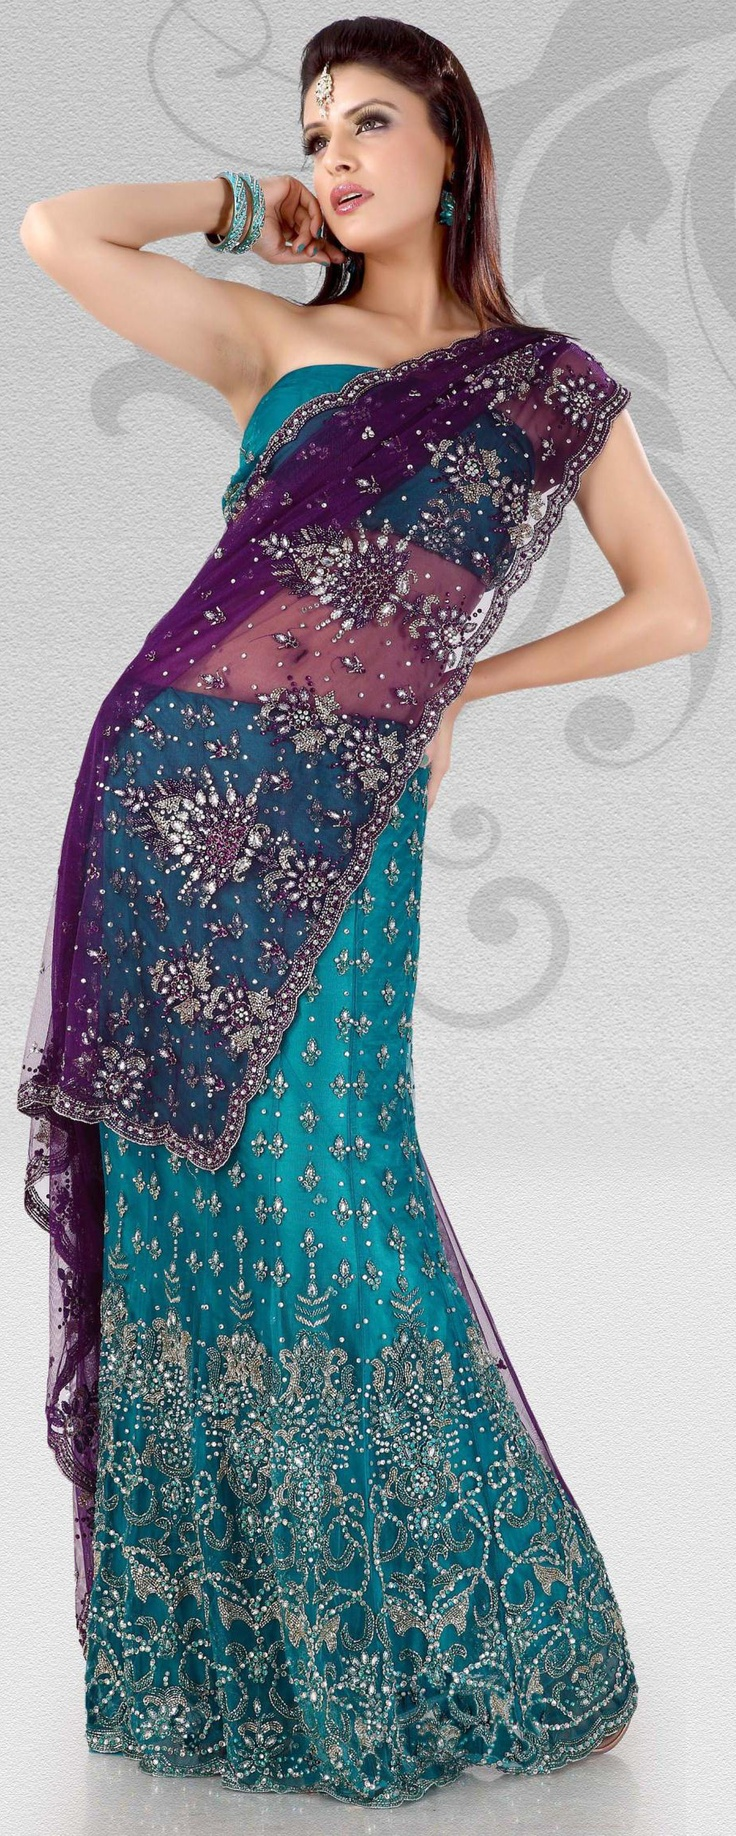 179 best India wedding dresses and weddings images on Pinterest ...